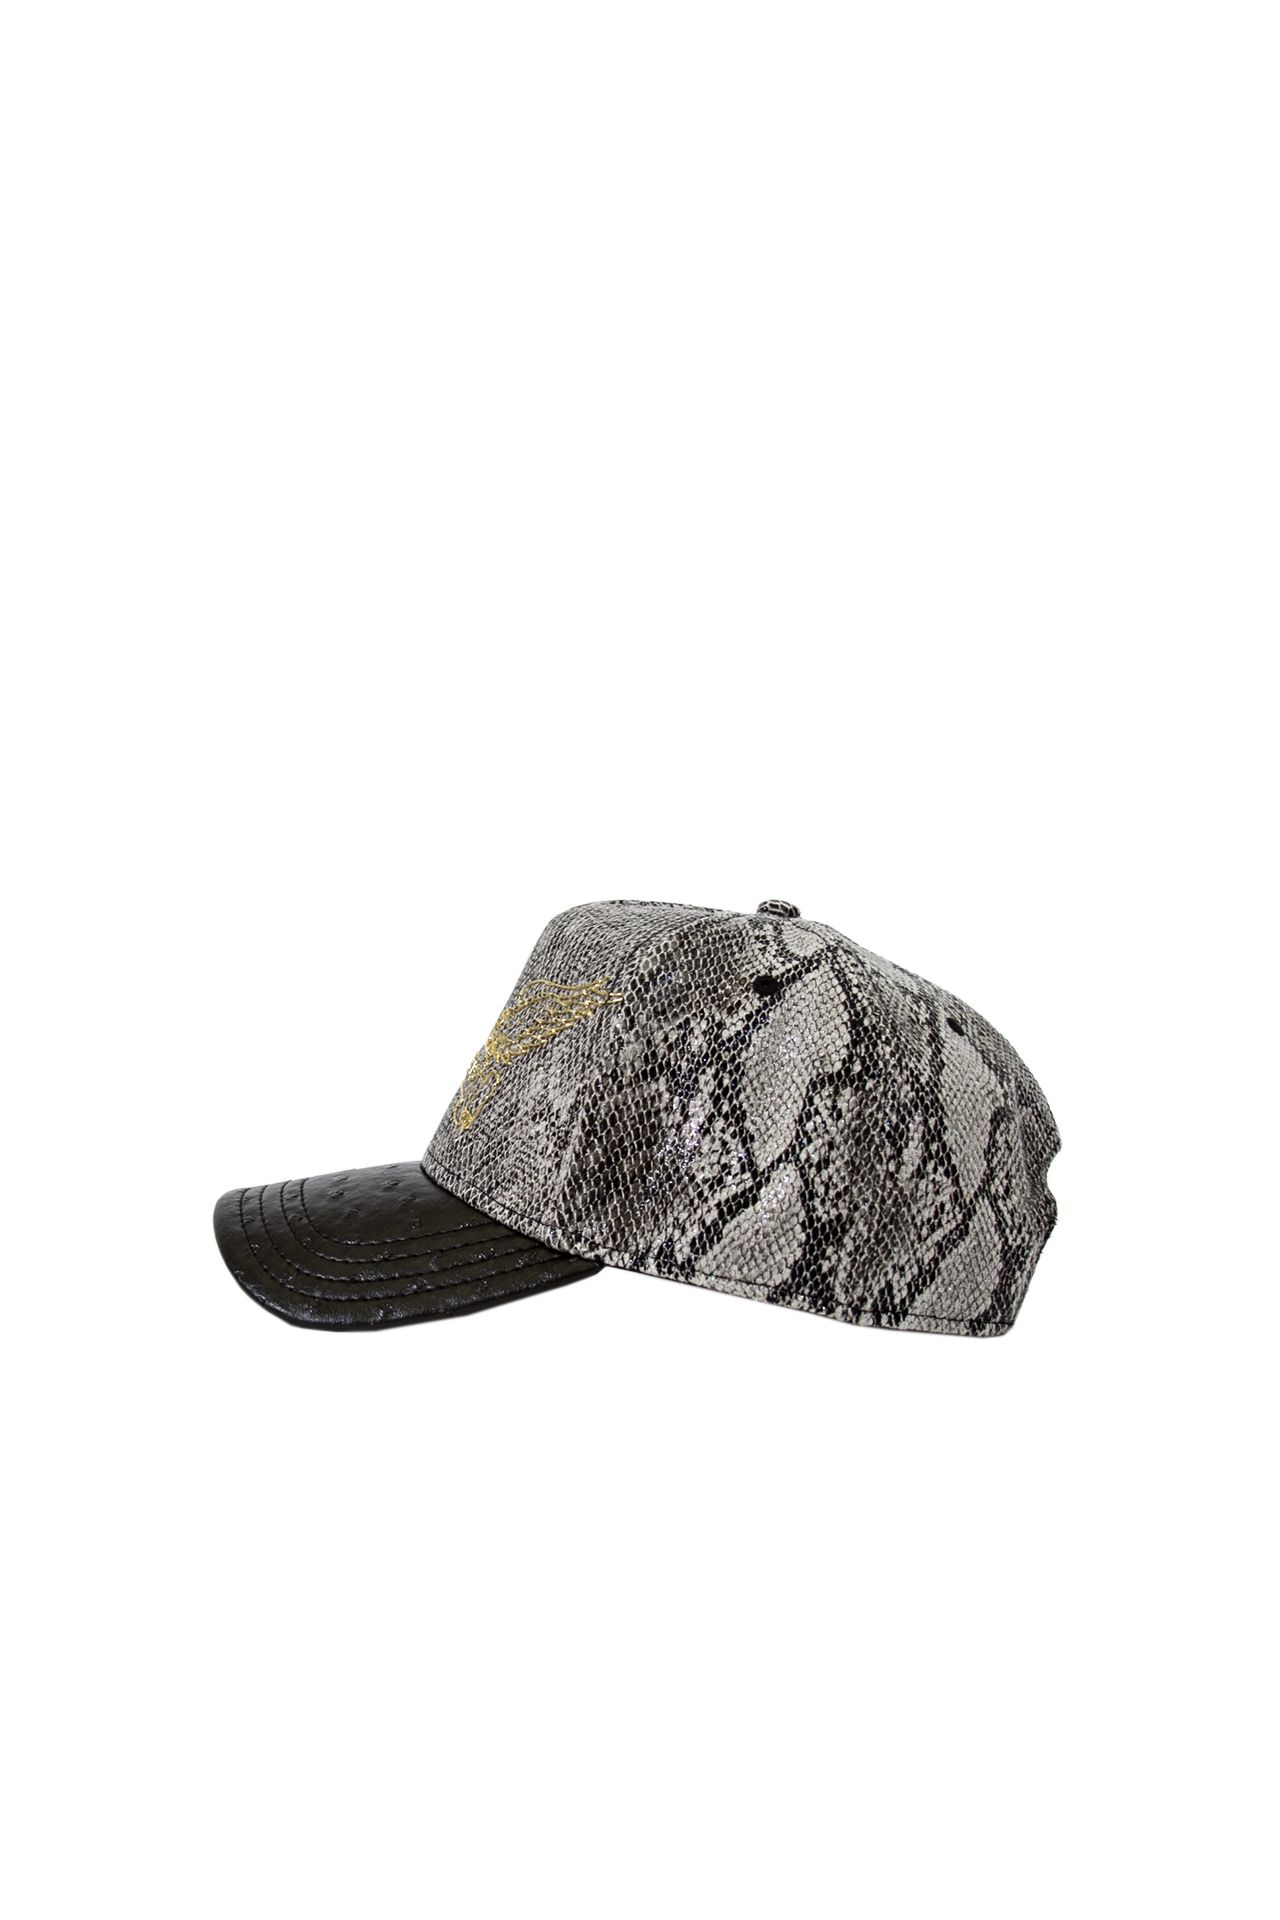 TEXTURED SNAKE CAP WITH LEATHER LOOK BILL